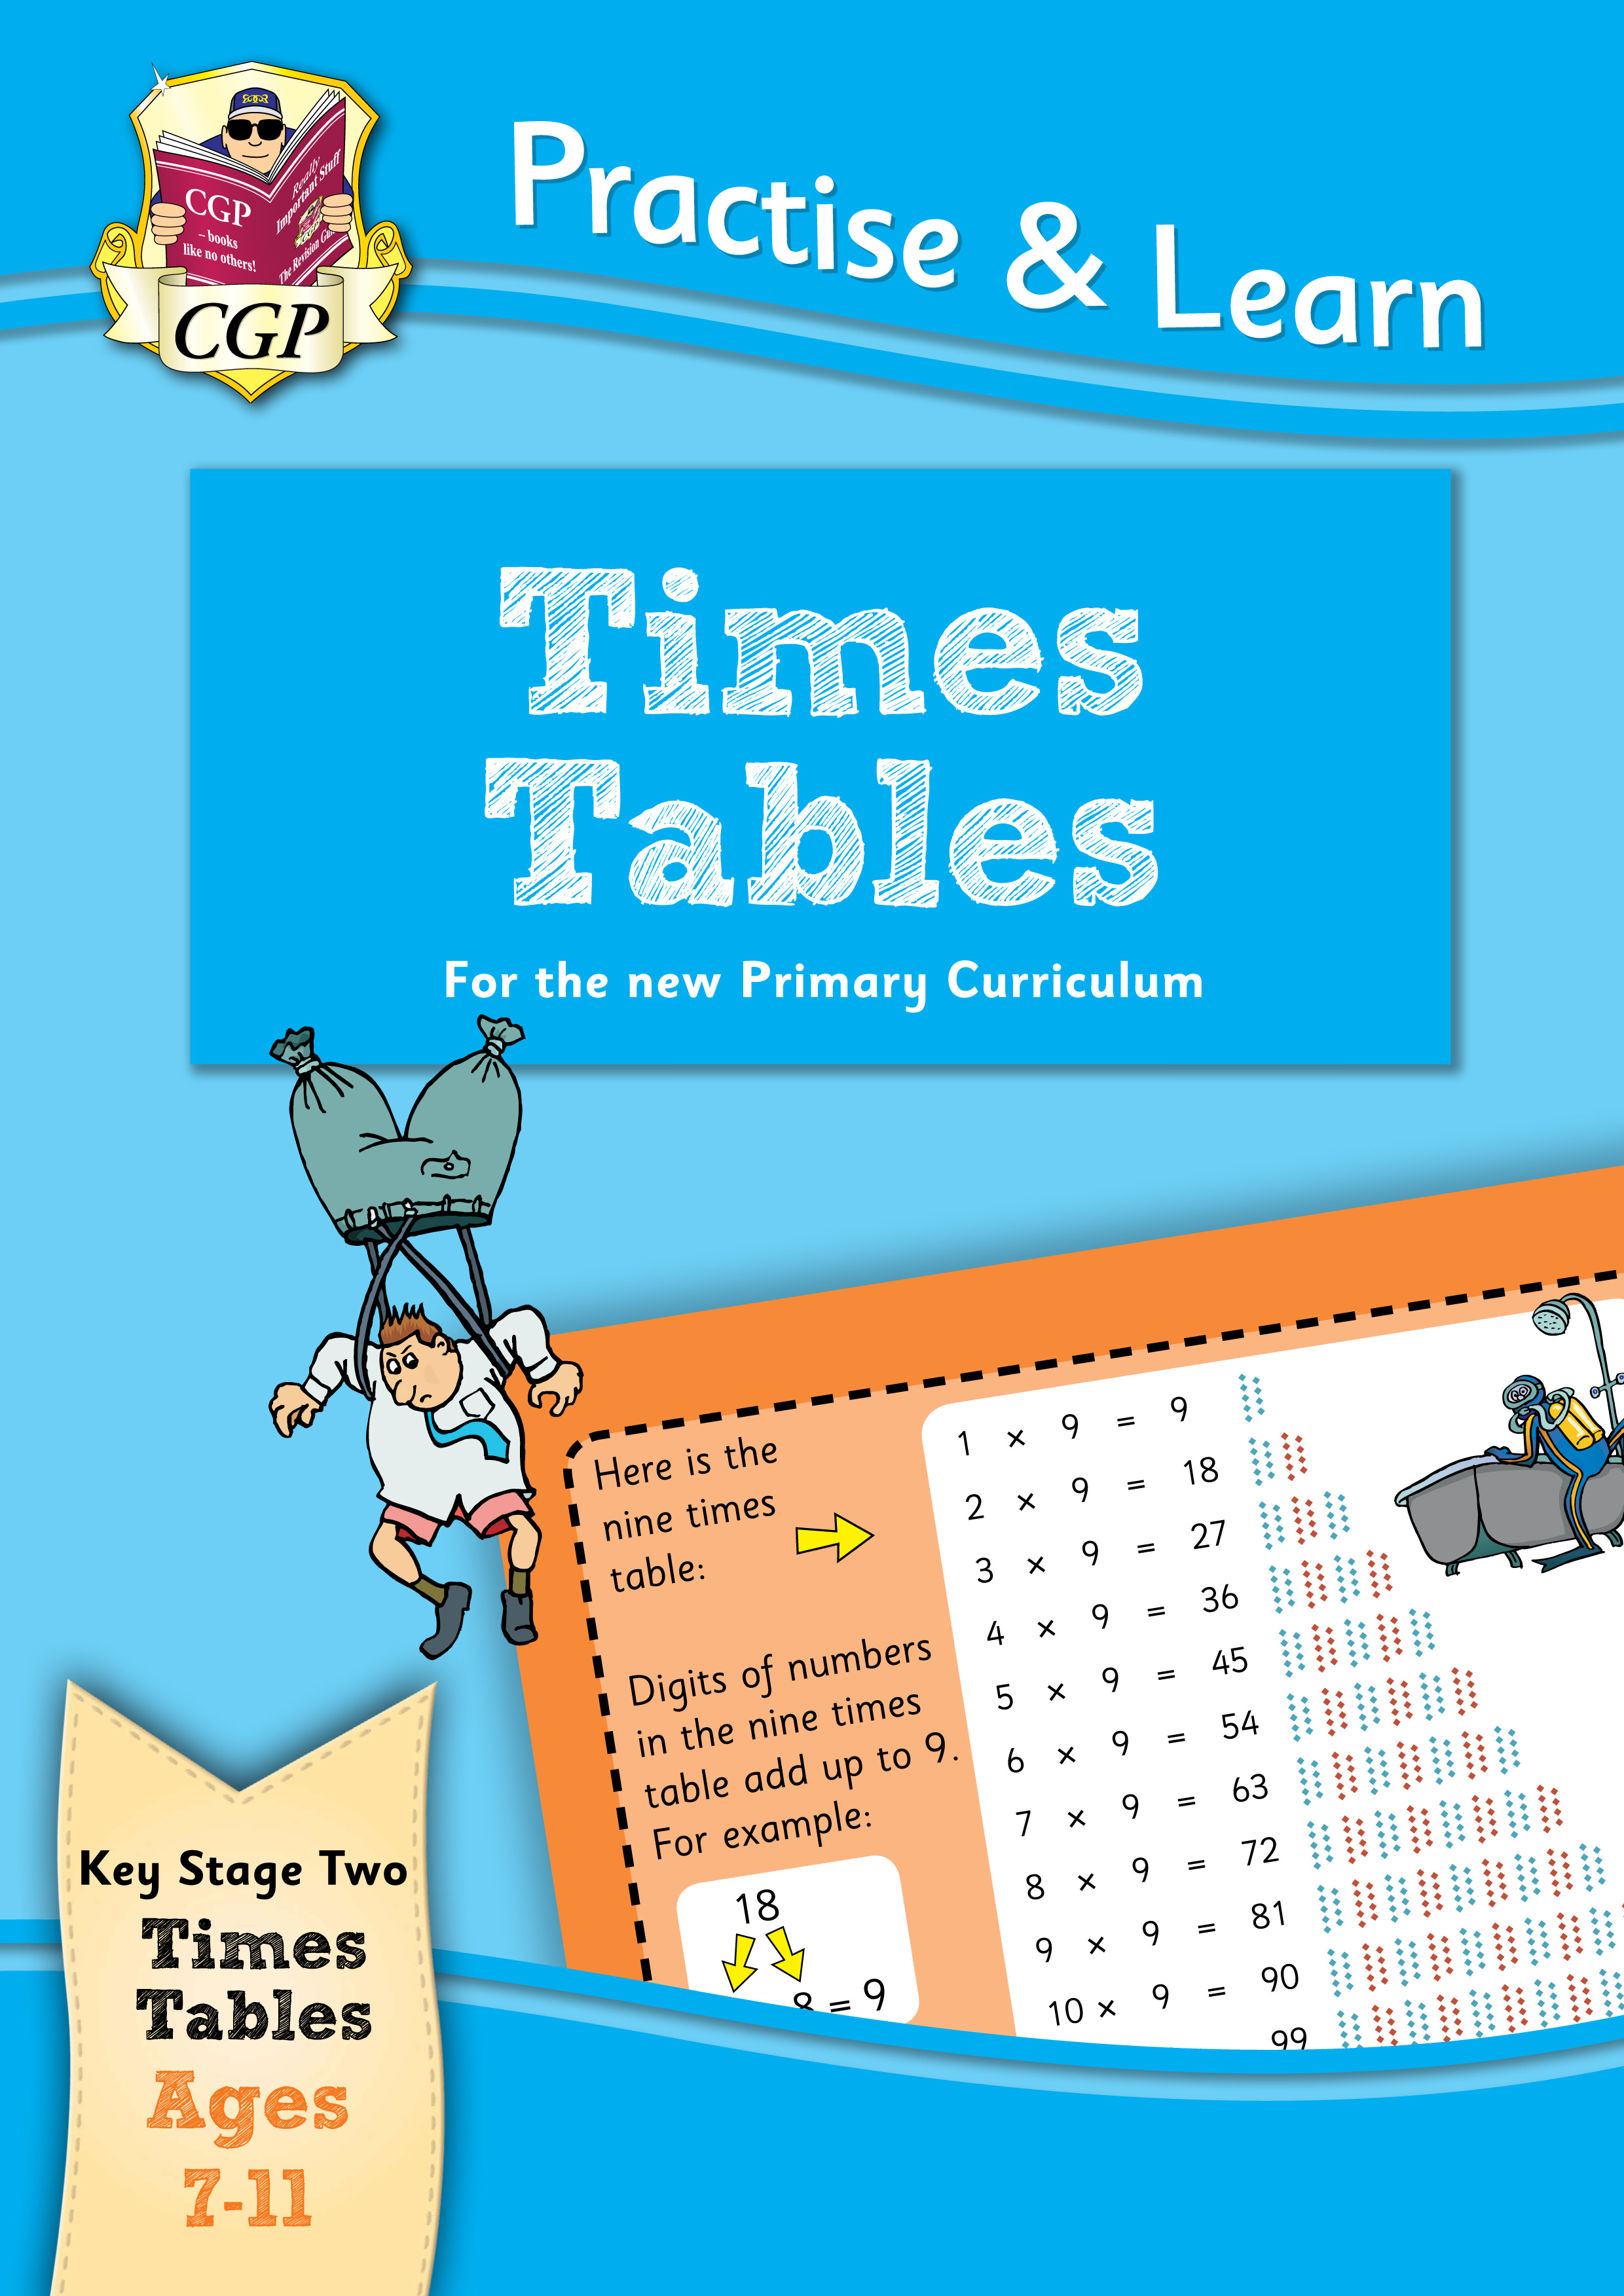 MPTT22DK - New Curriculum Practise & Learn: Times Tables for Ages 7-11